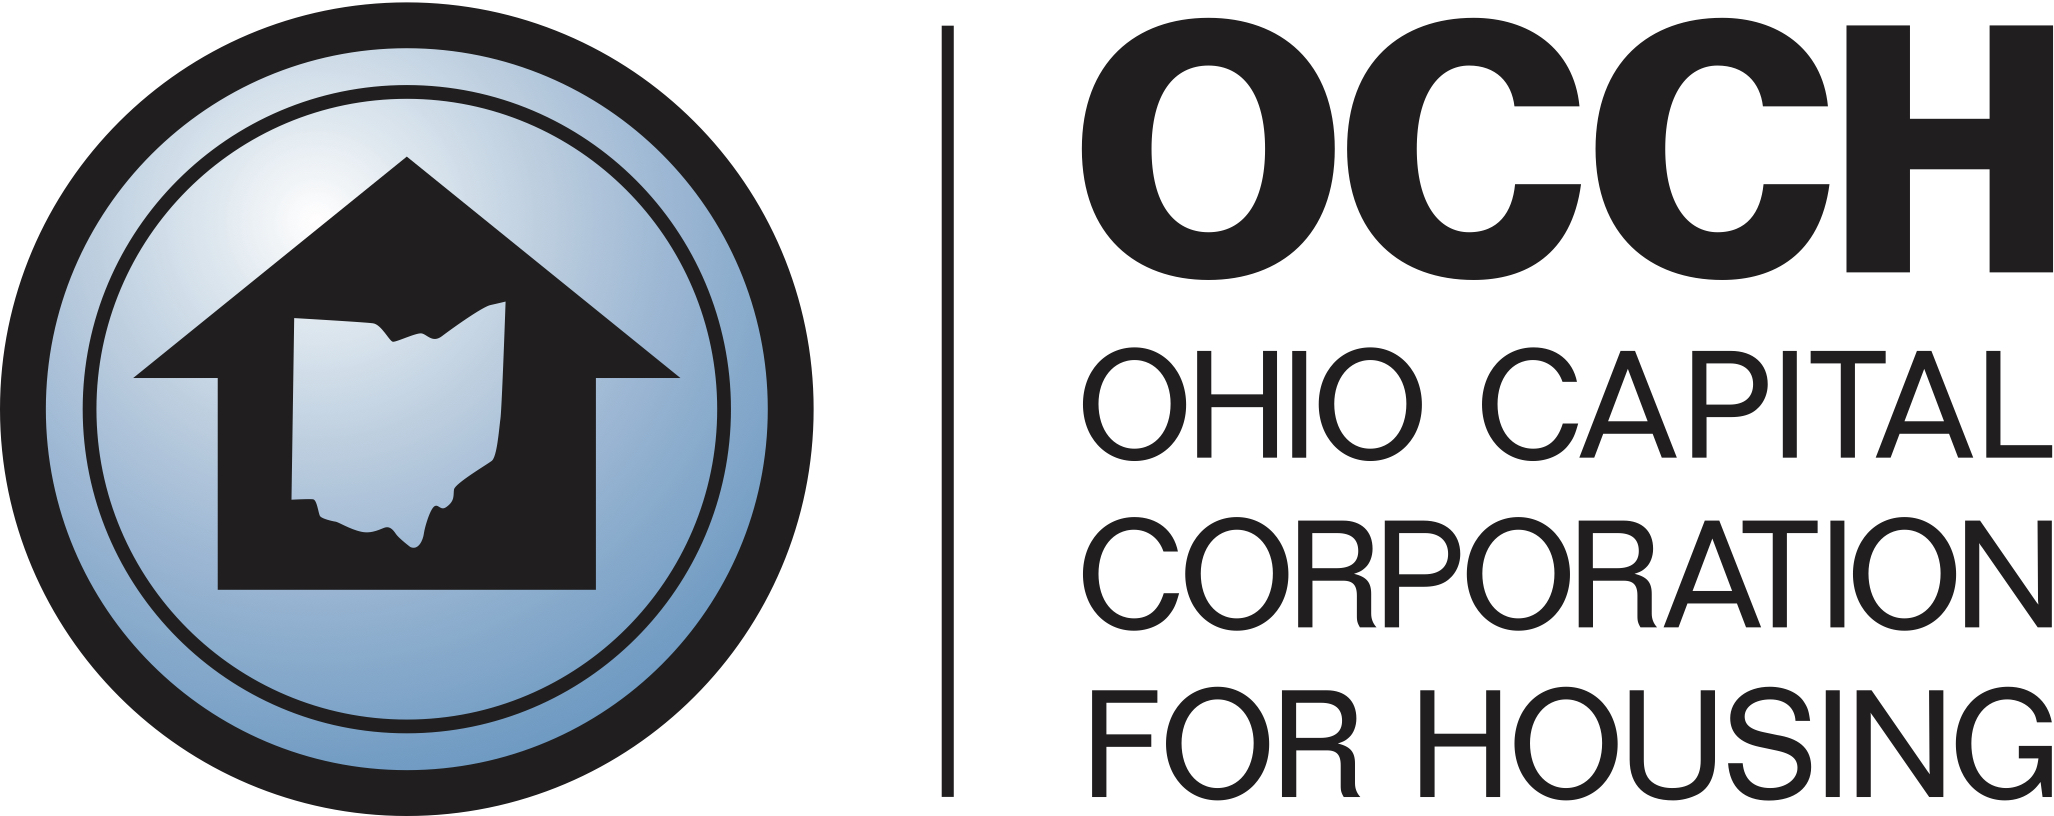 Ohio Capital Corporation for Housing